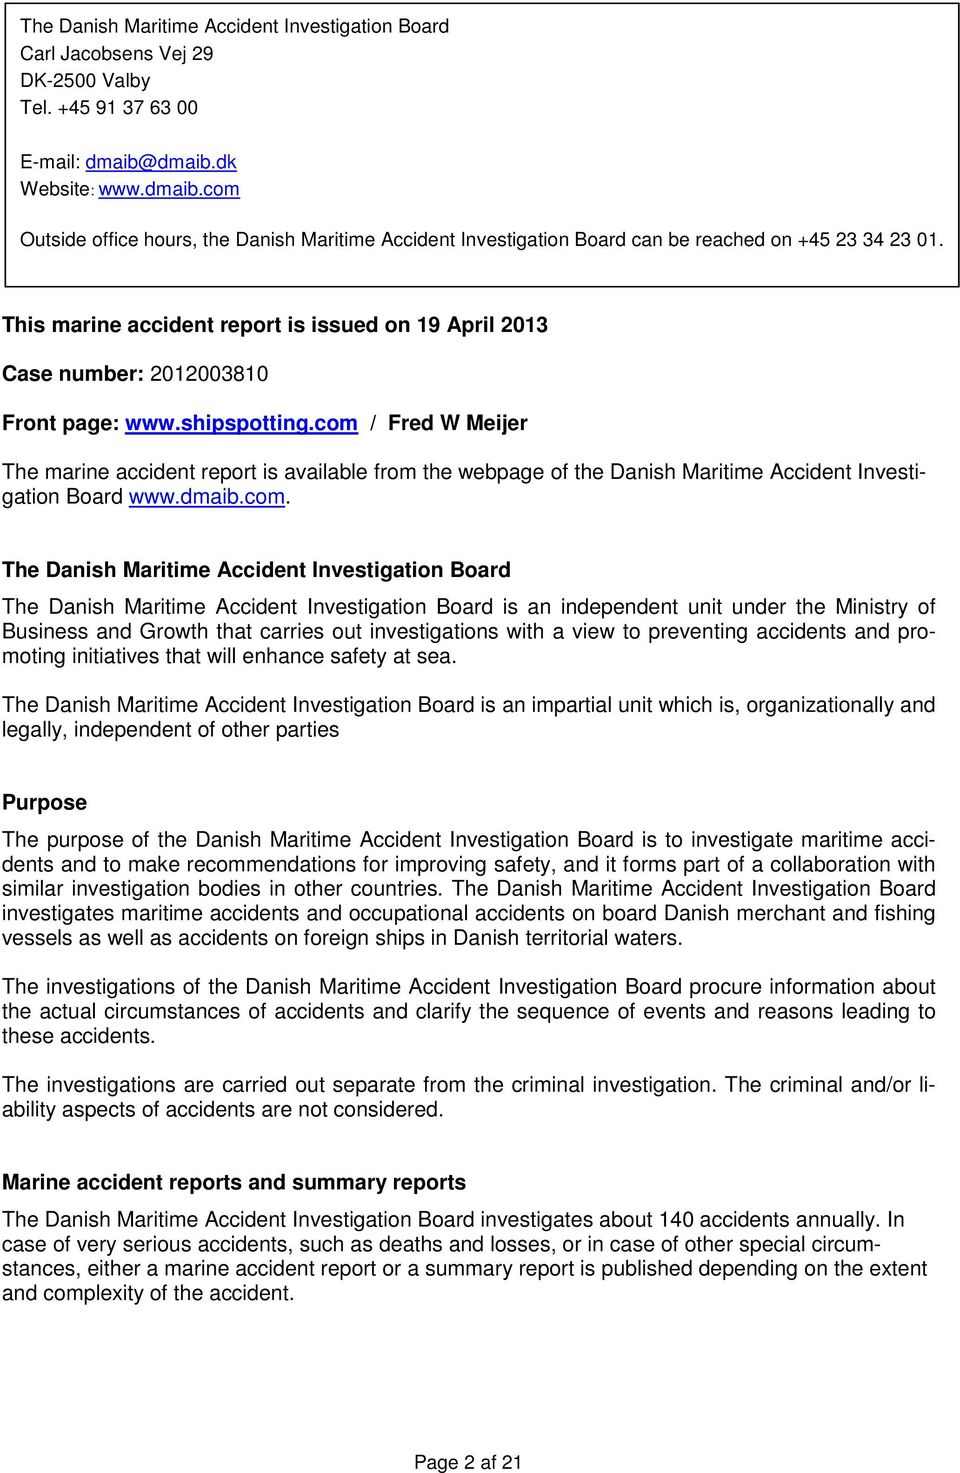 This marine accident report is issued on 19 April 2013 Case number: 2012003810 Front page: www.shipspotting.